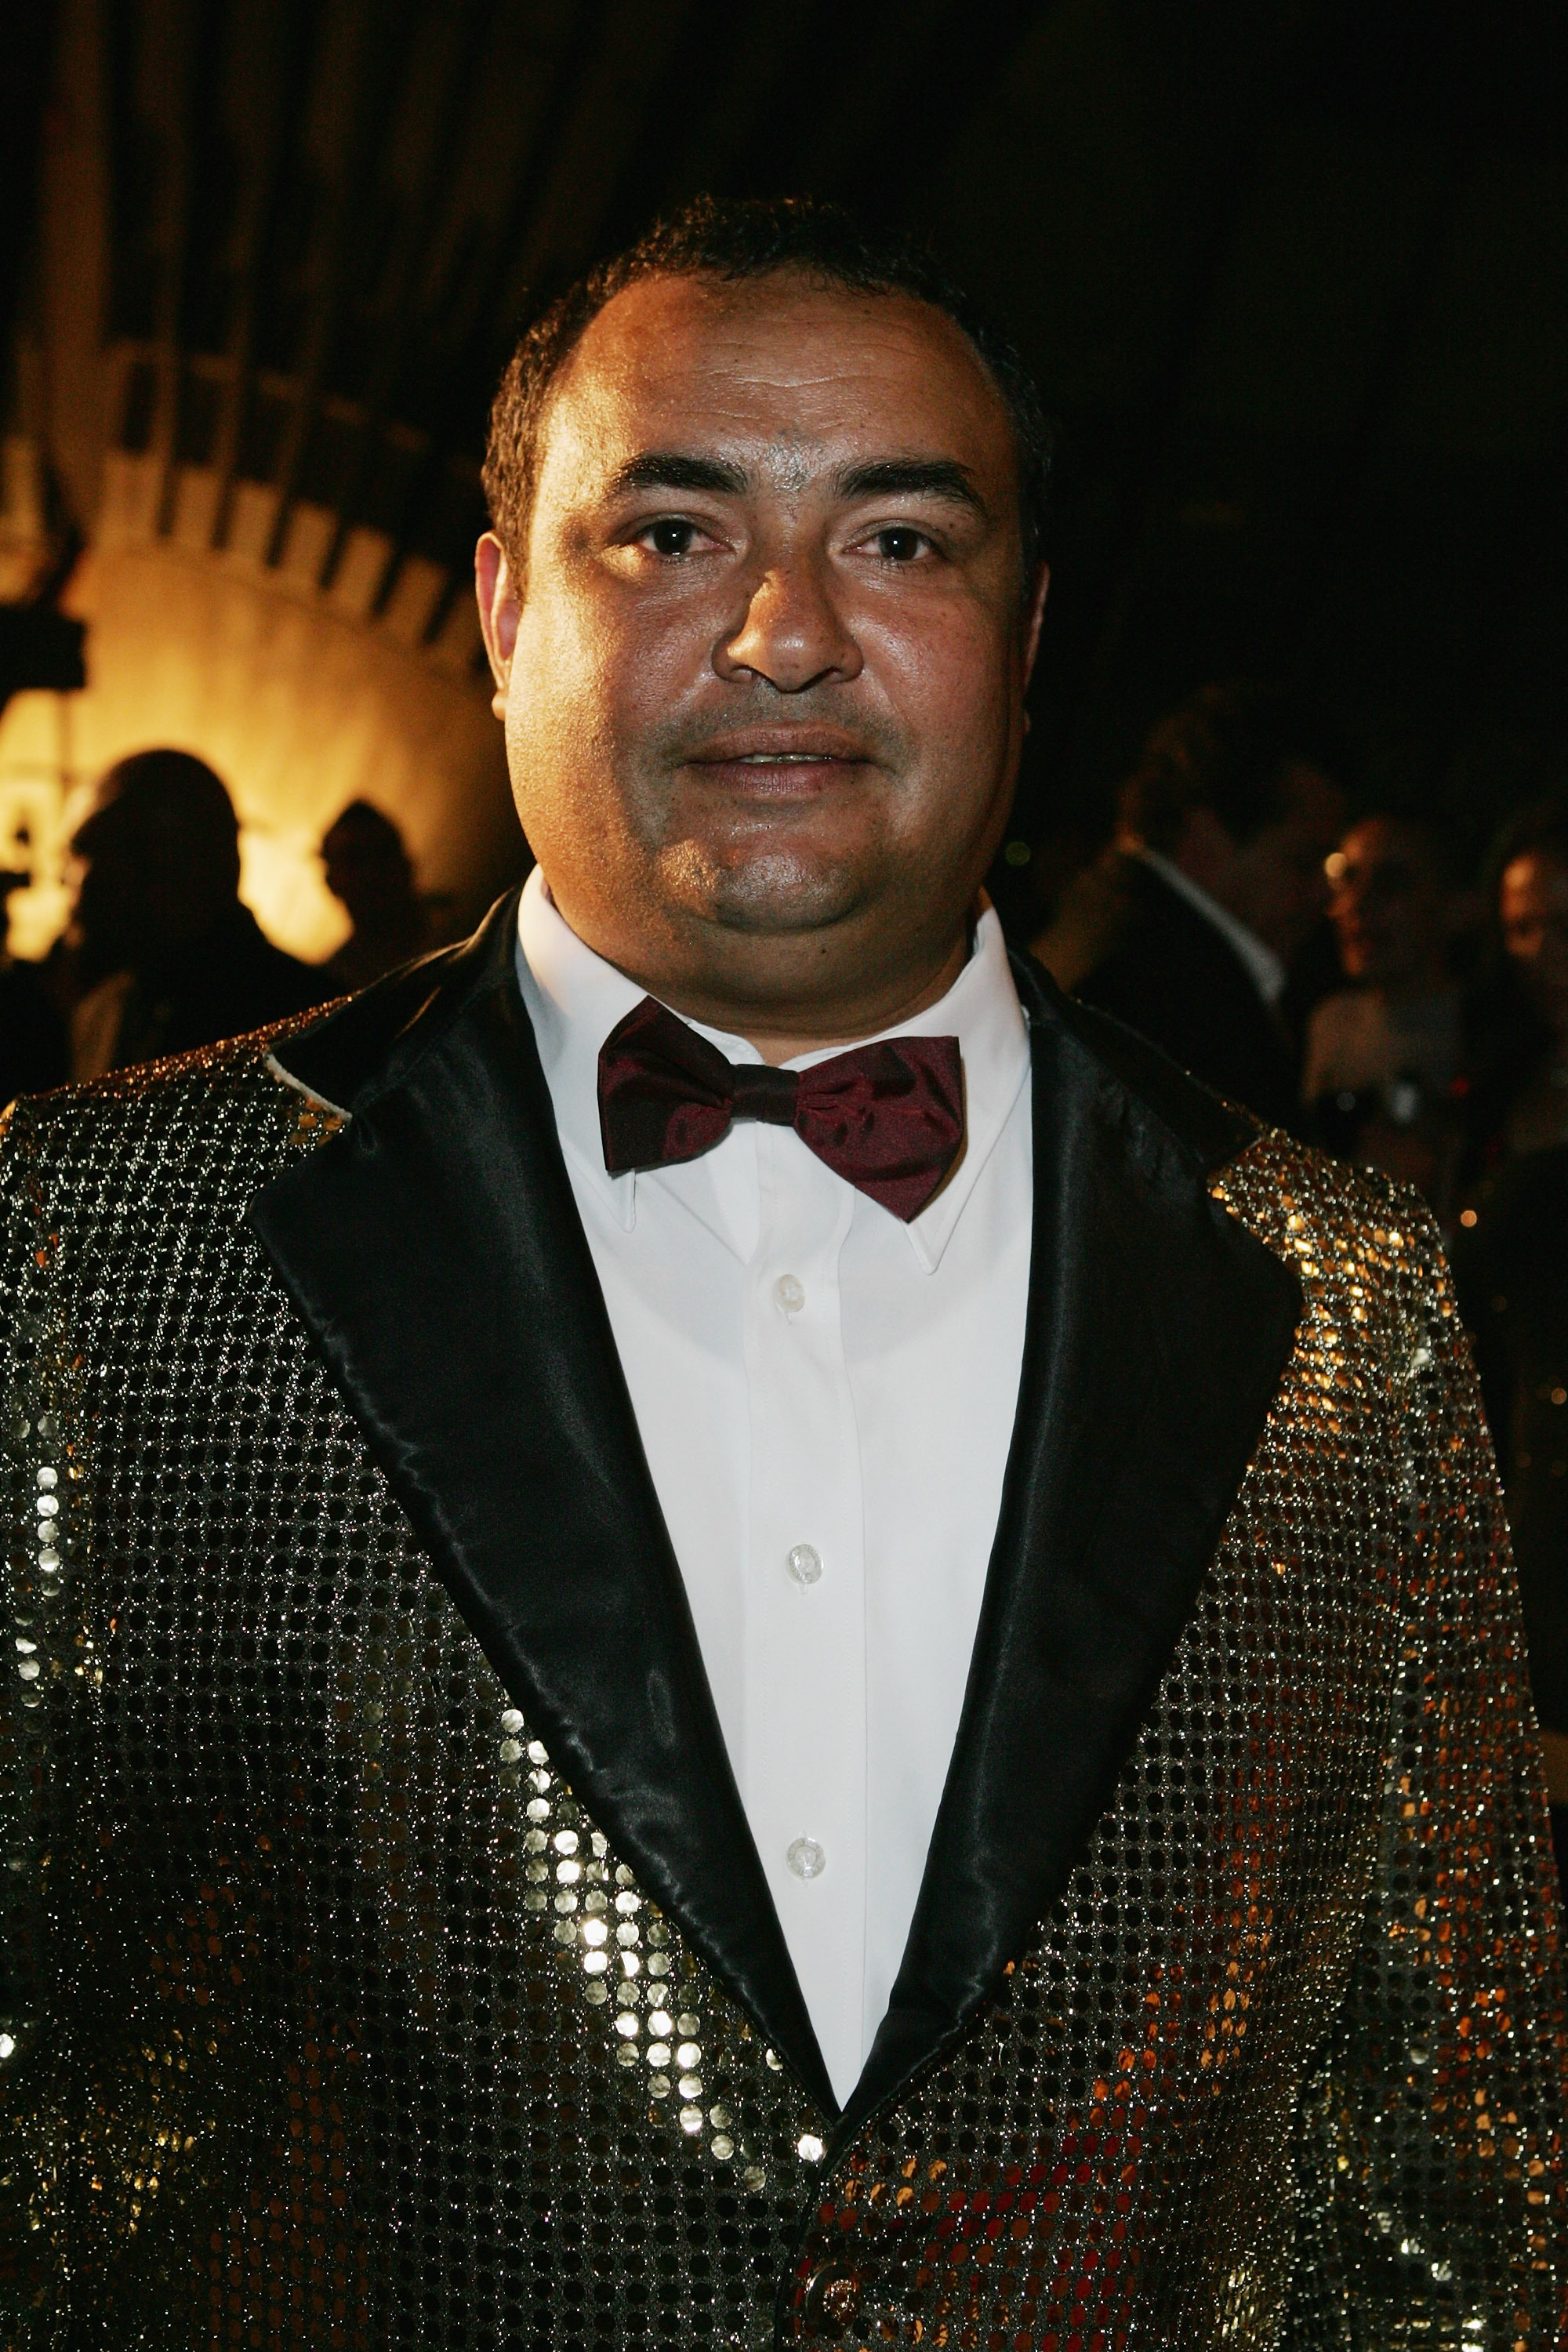 Dennis Nona nominated for Visual Artist of the Year attends the 2007 Deadlys Awards at the Sydney Opera House Sept. 27, 2007 in Sydney, Australia